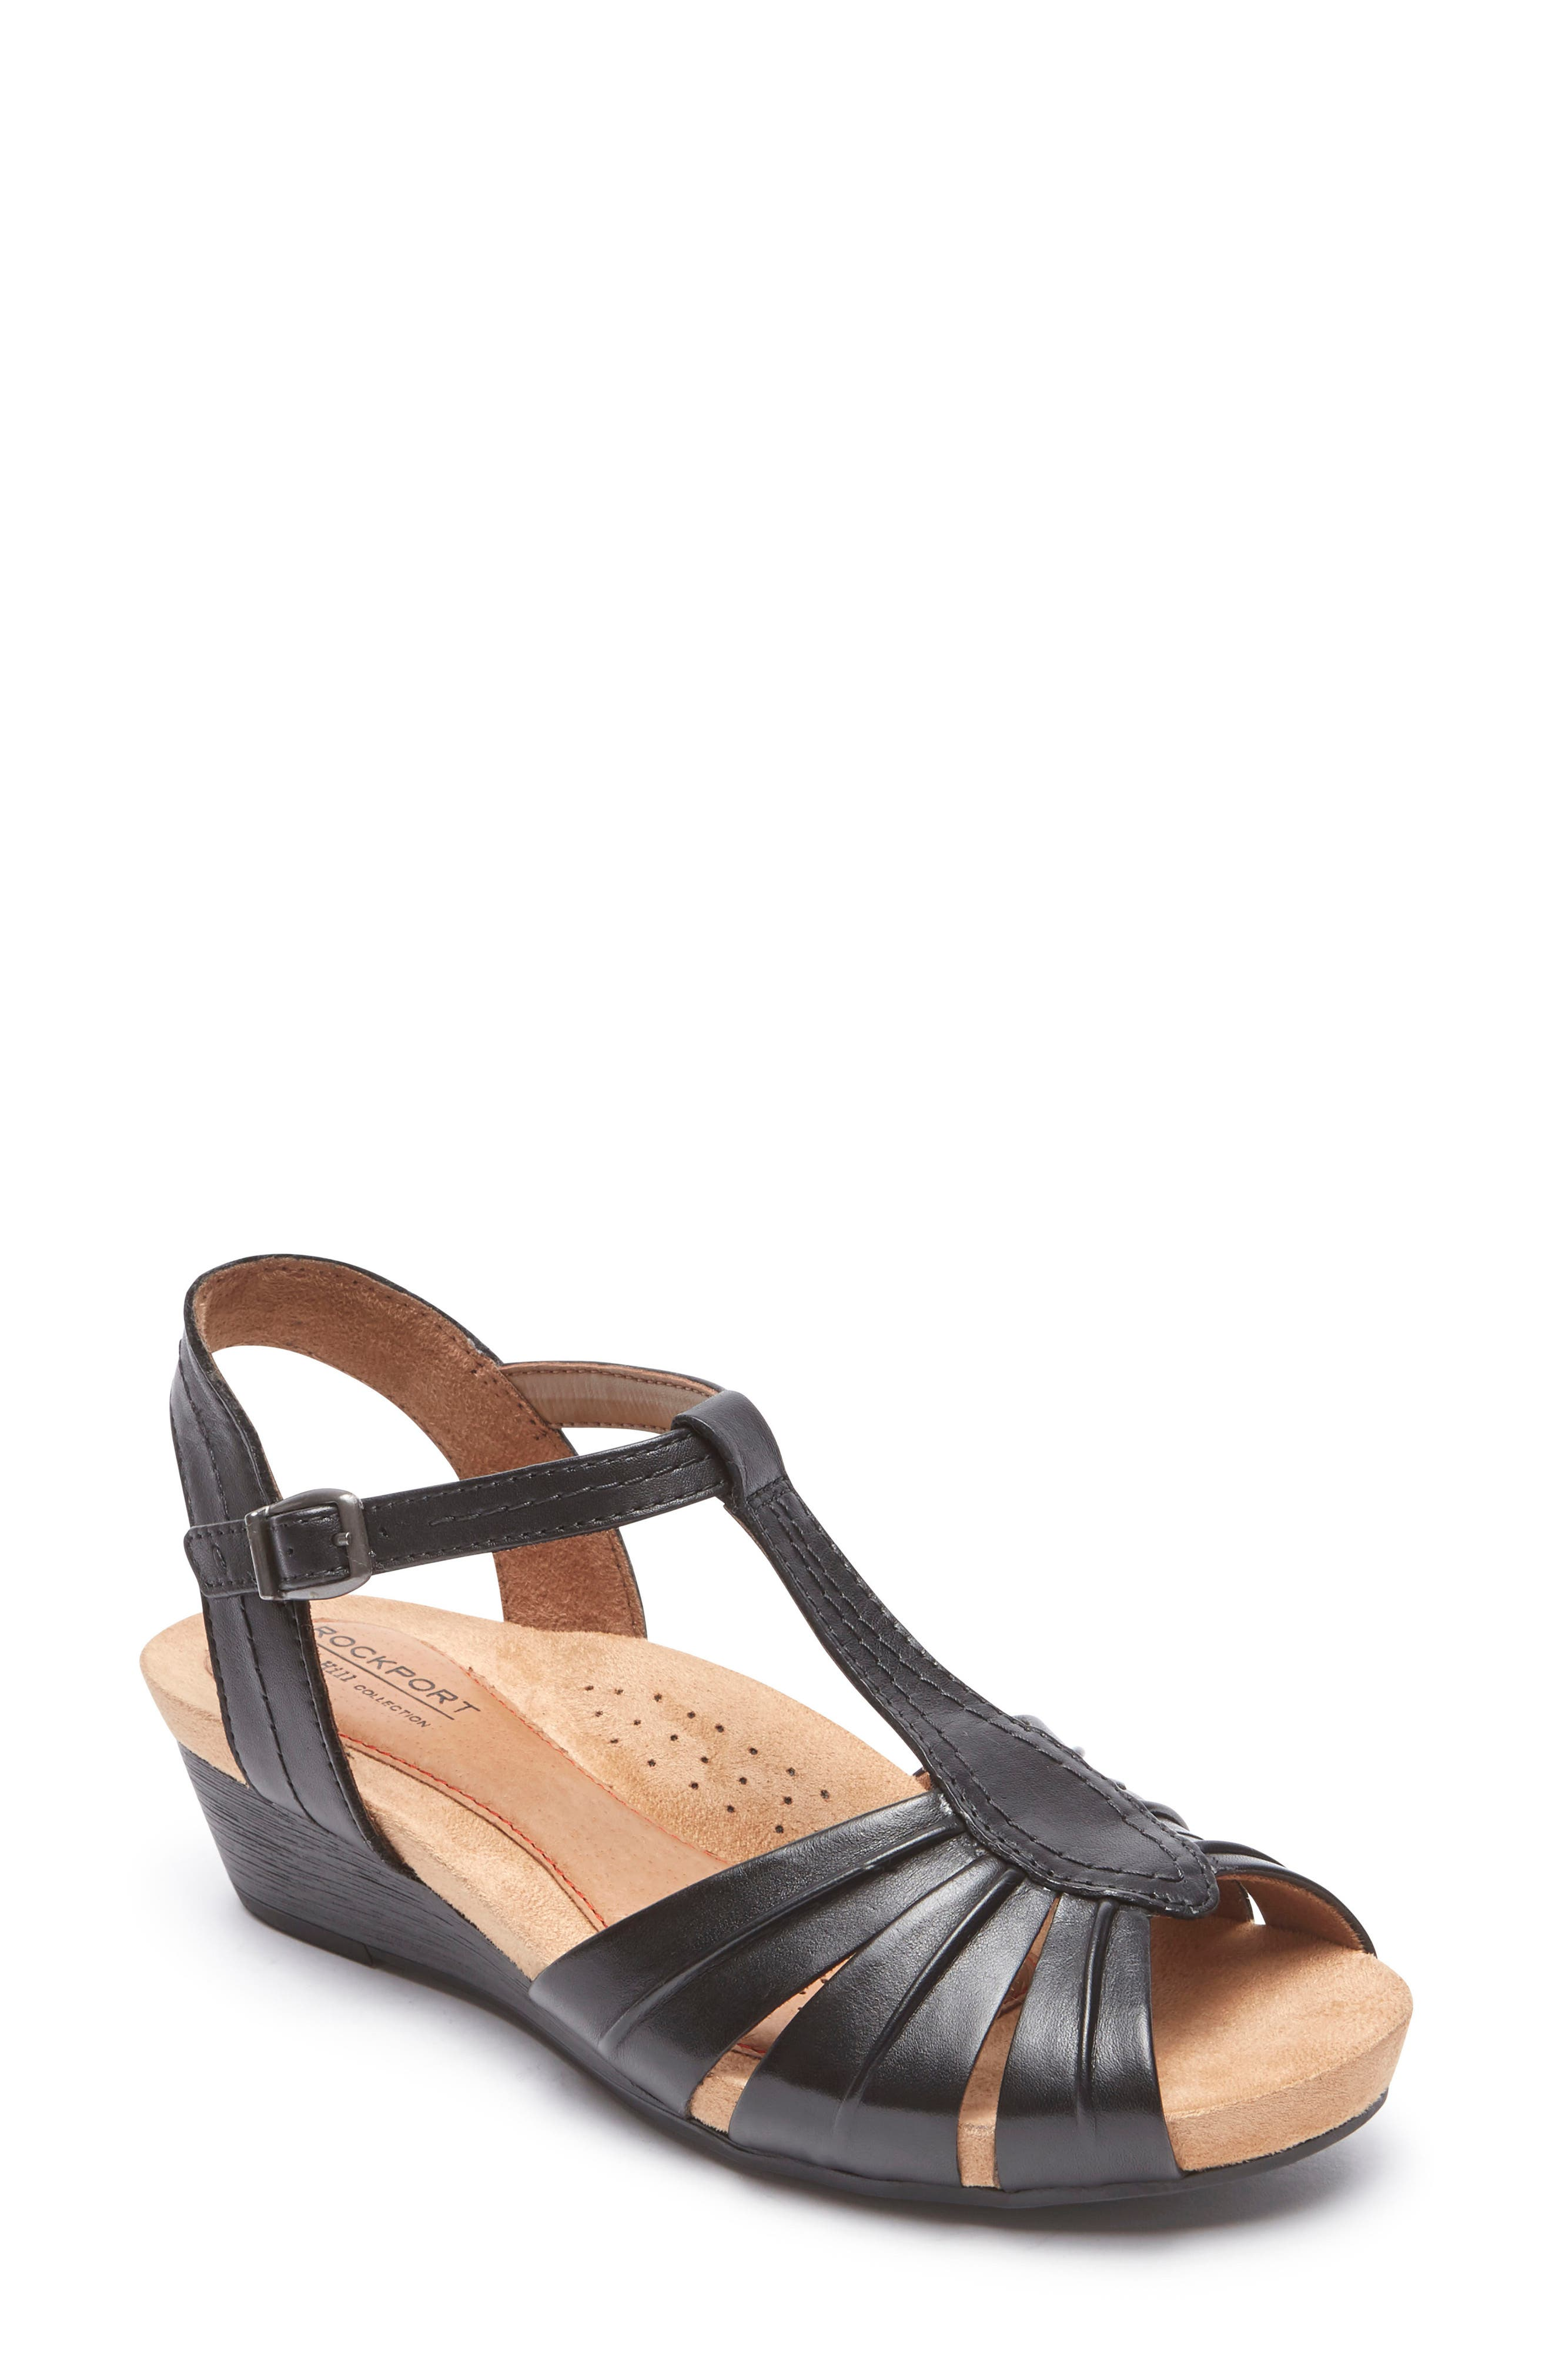 Hollywood Pleat Wedge Sandal,                         Main,                         color, Black Leather